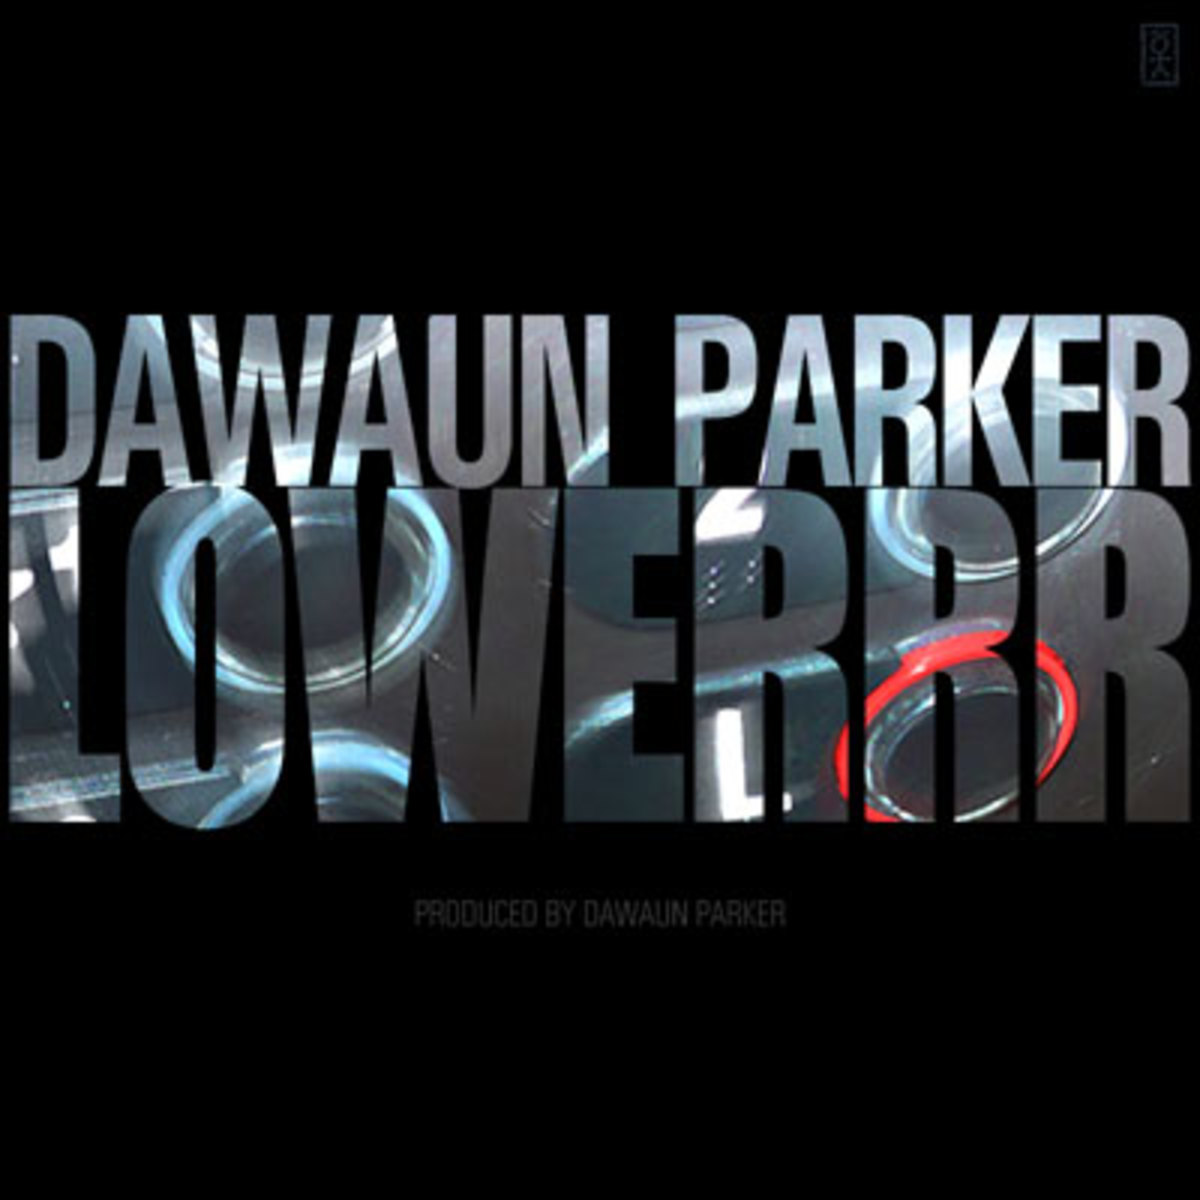 dawaunparker-lower.jpg